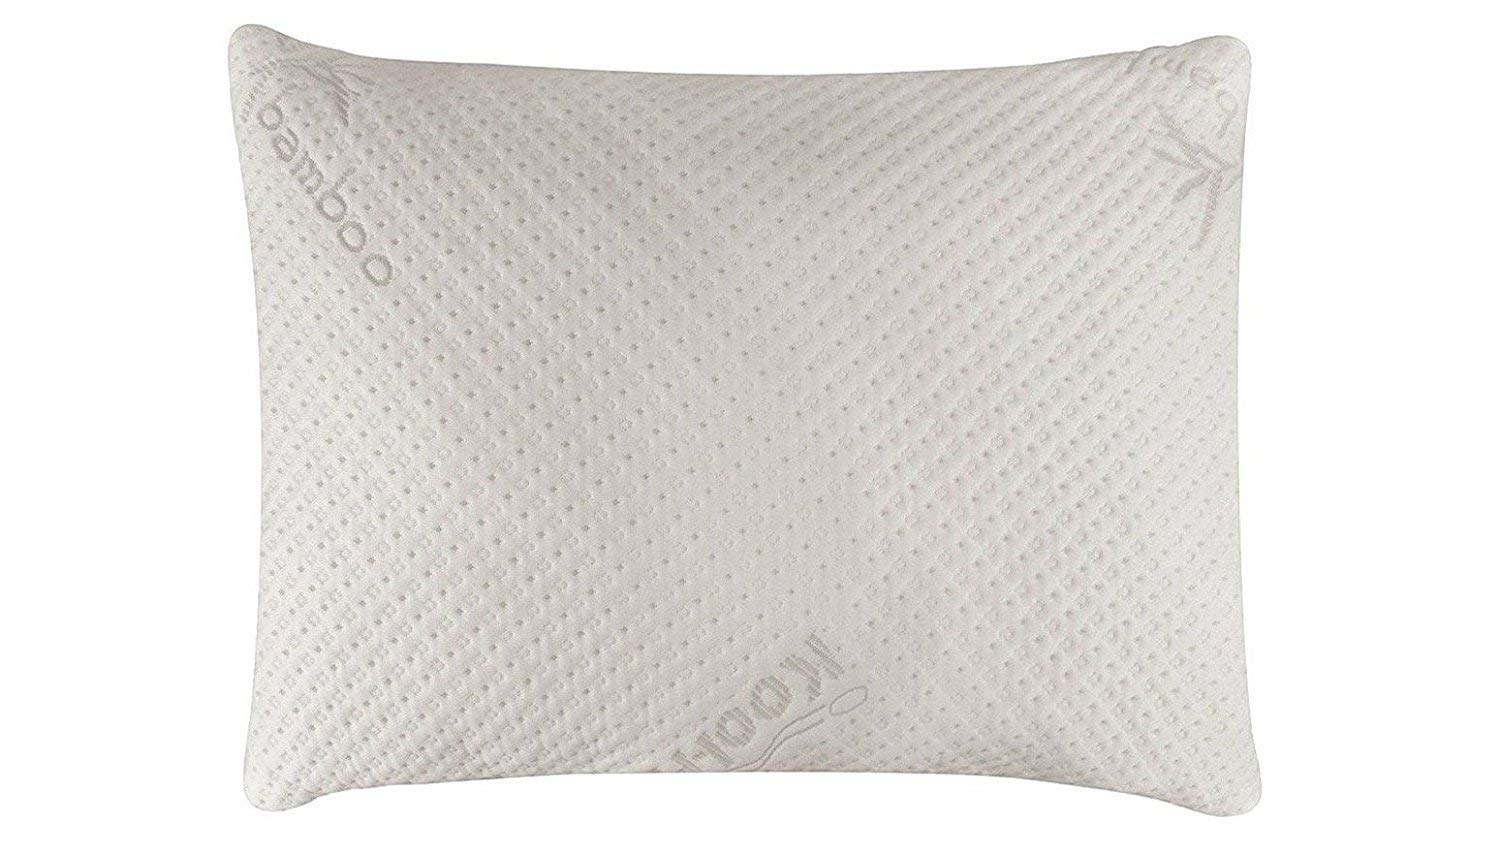 Snuggle-Pedic Best Cooling Pillow Review By www.snoremagazine.com